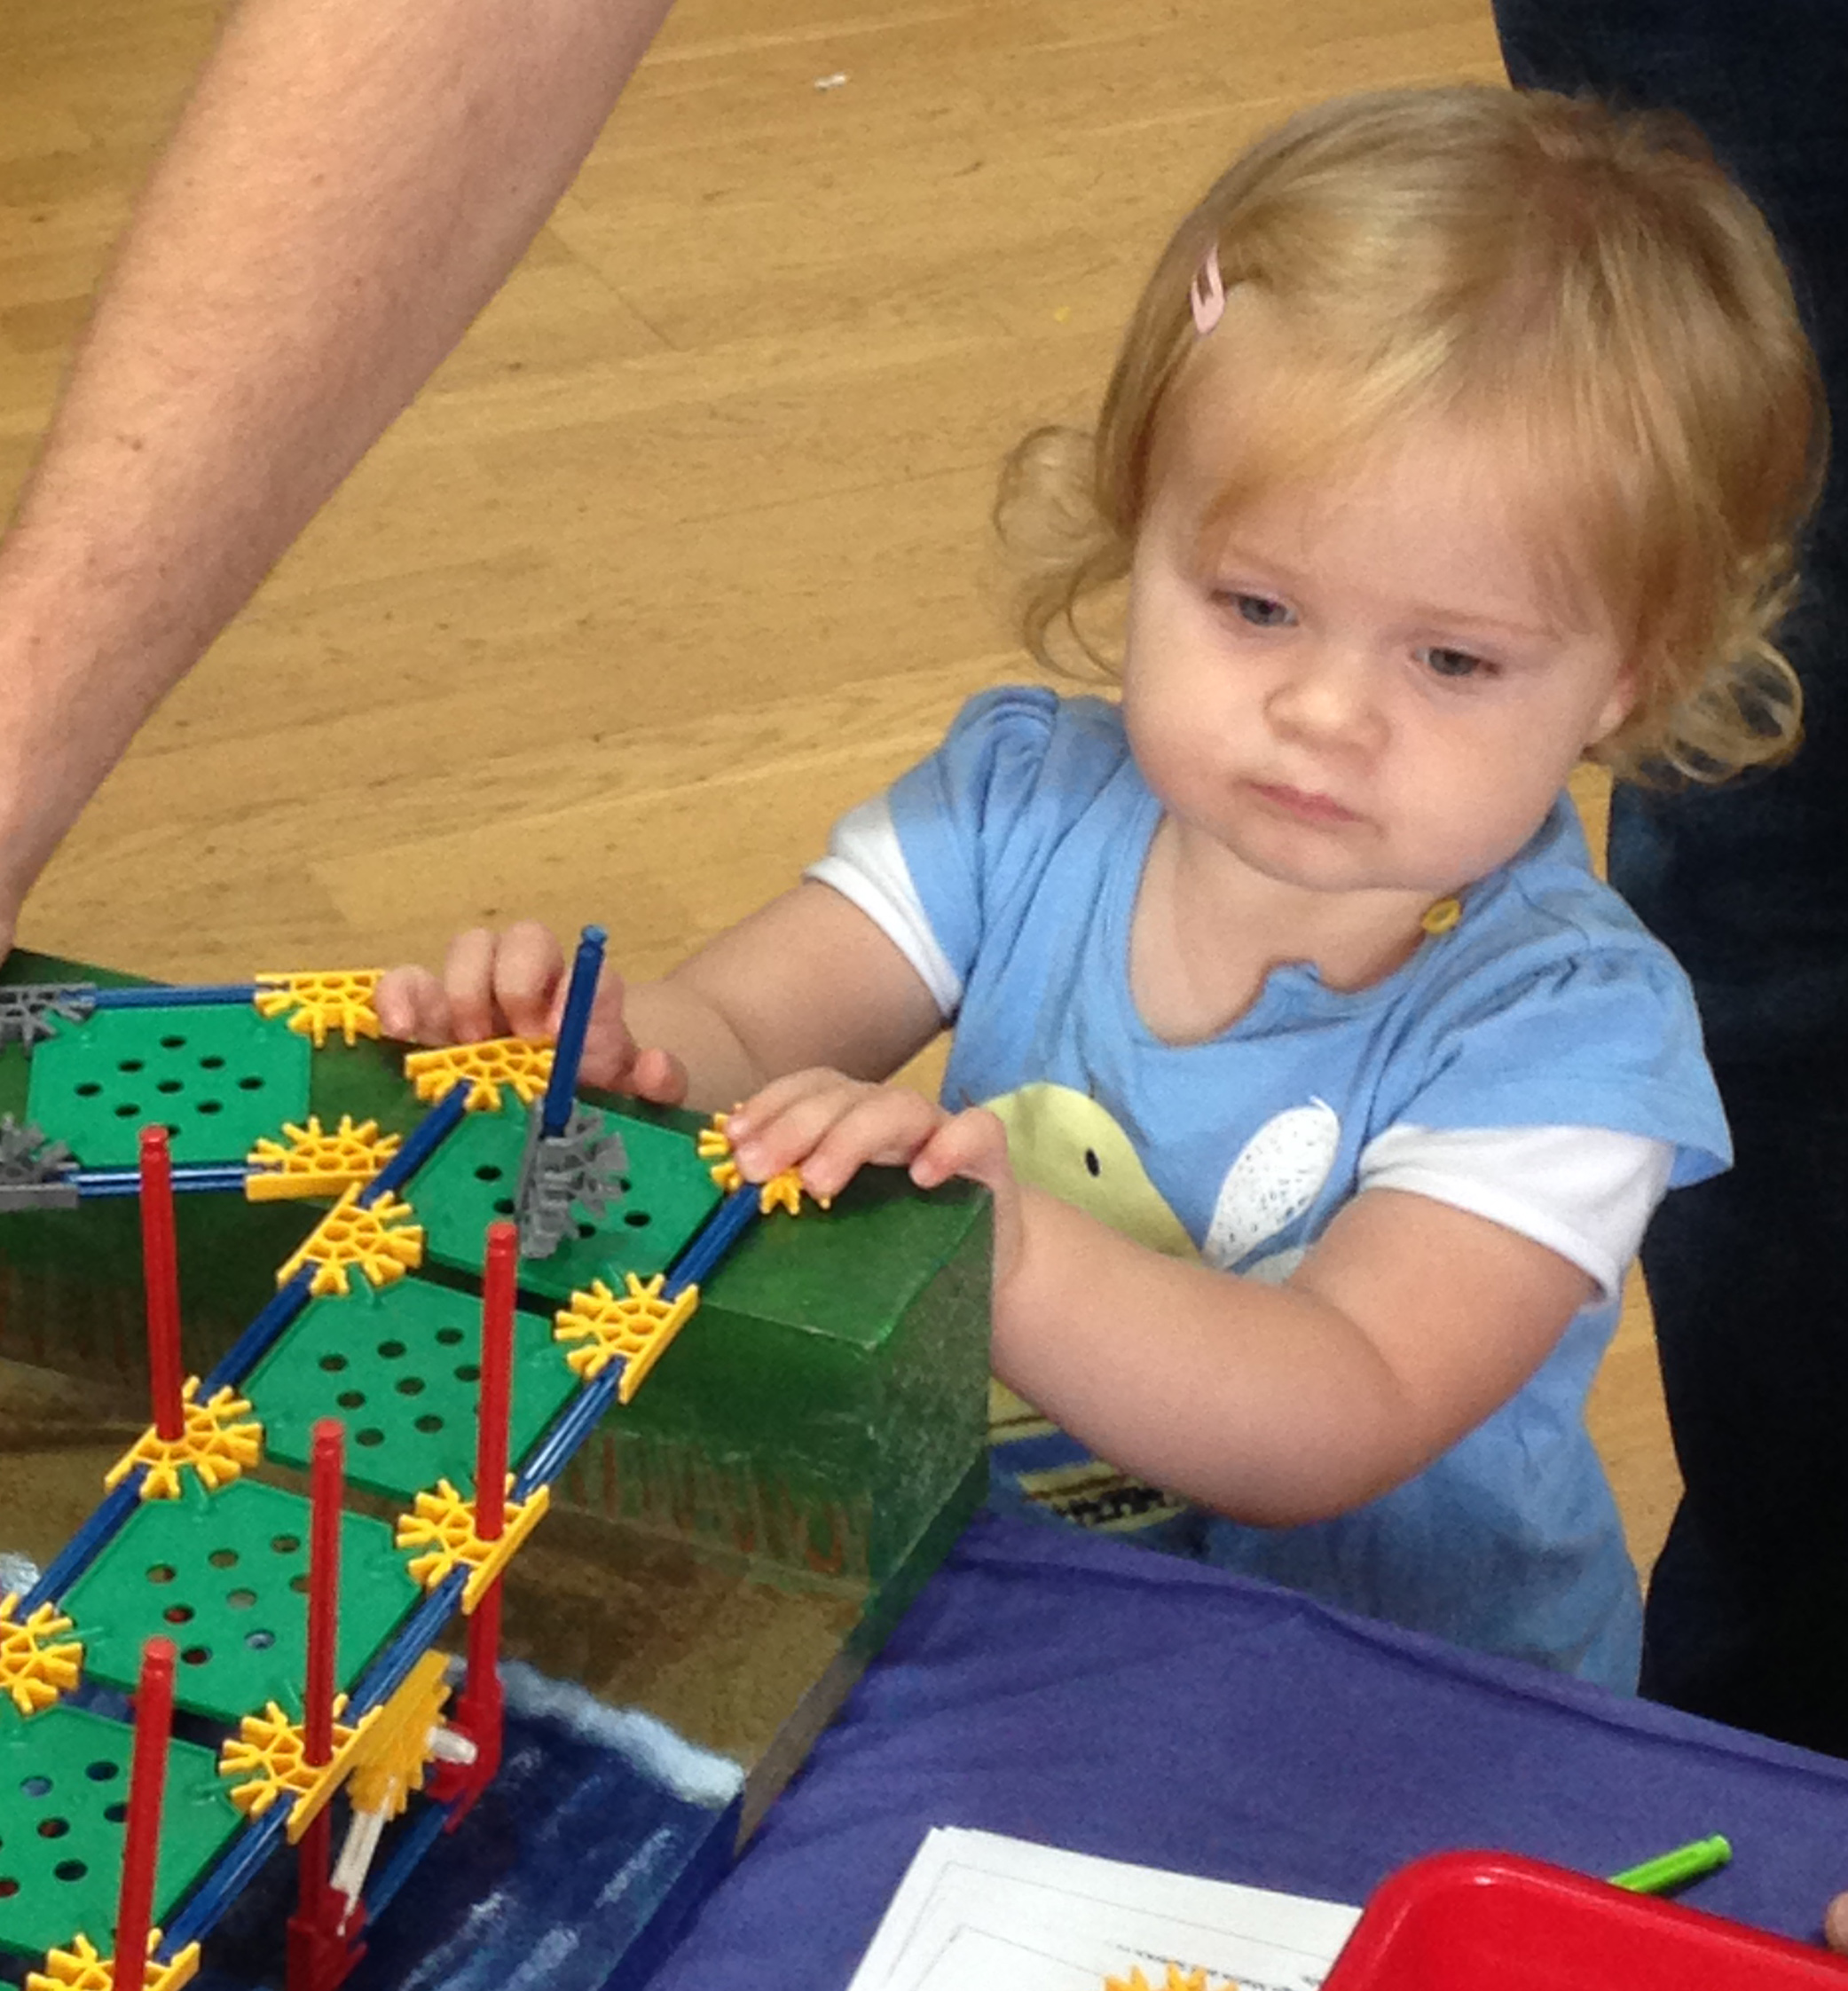 Children are never too young to be inspired by engineering